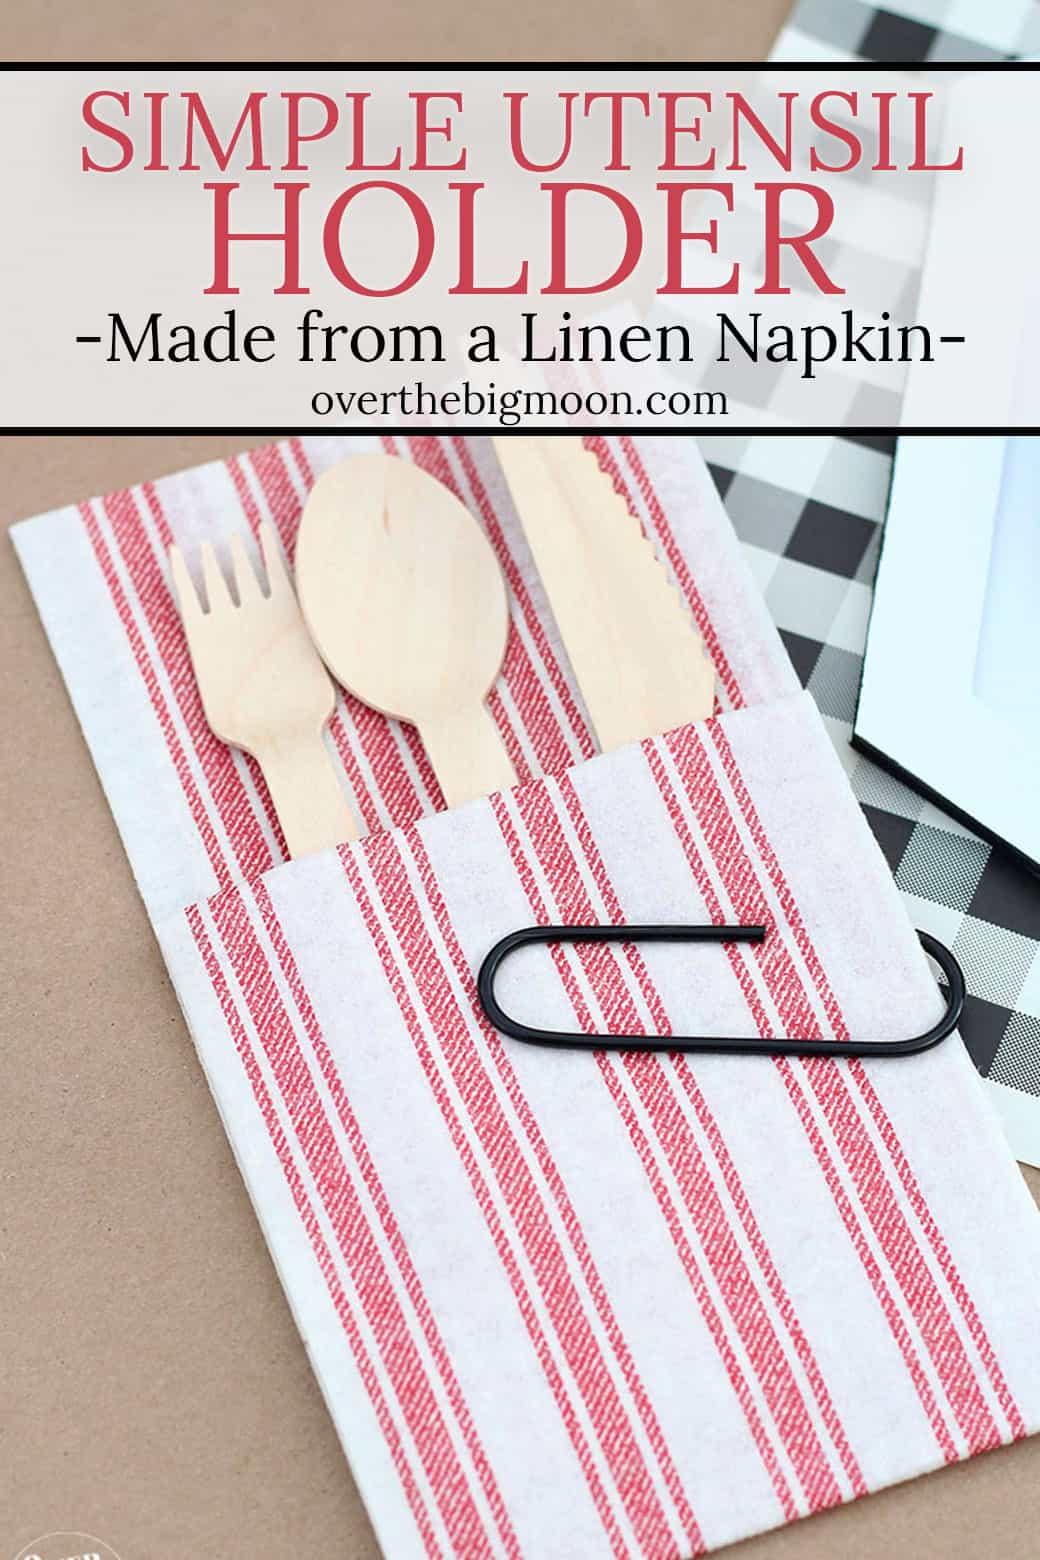 Simple Utensil Holder idea using just a linen napkin! From overthebigmoon.com!